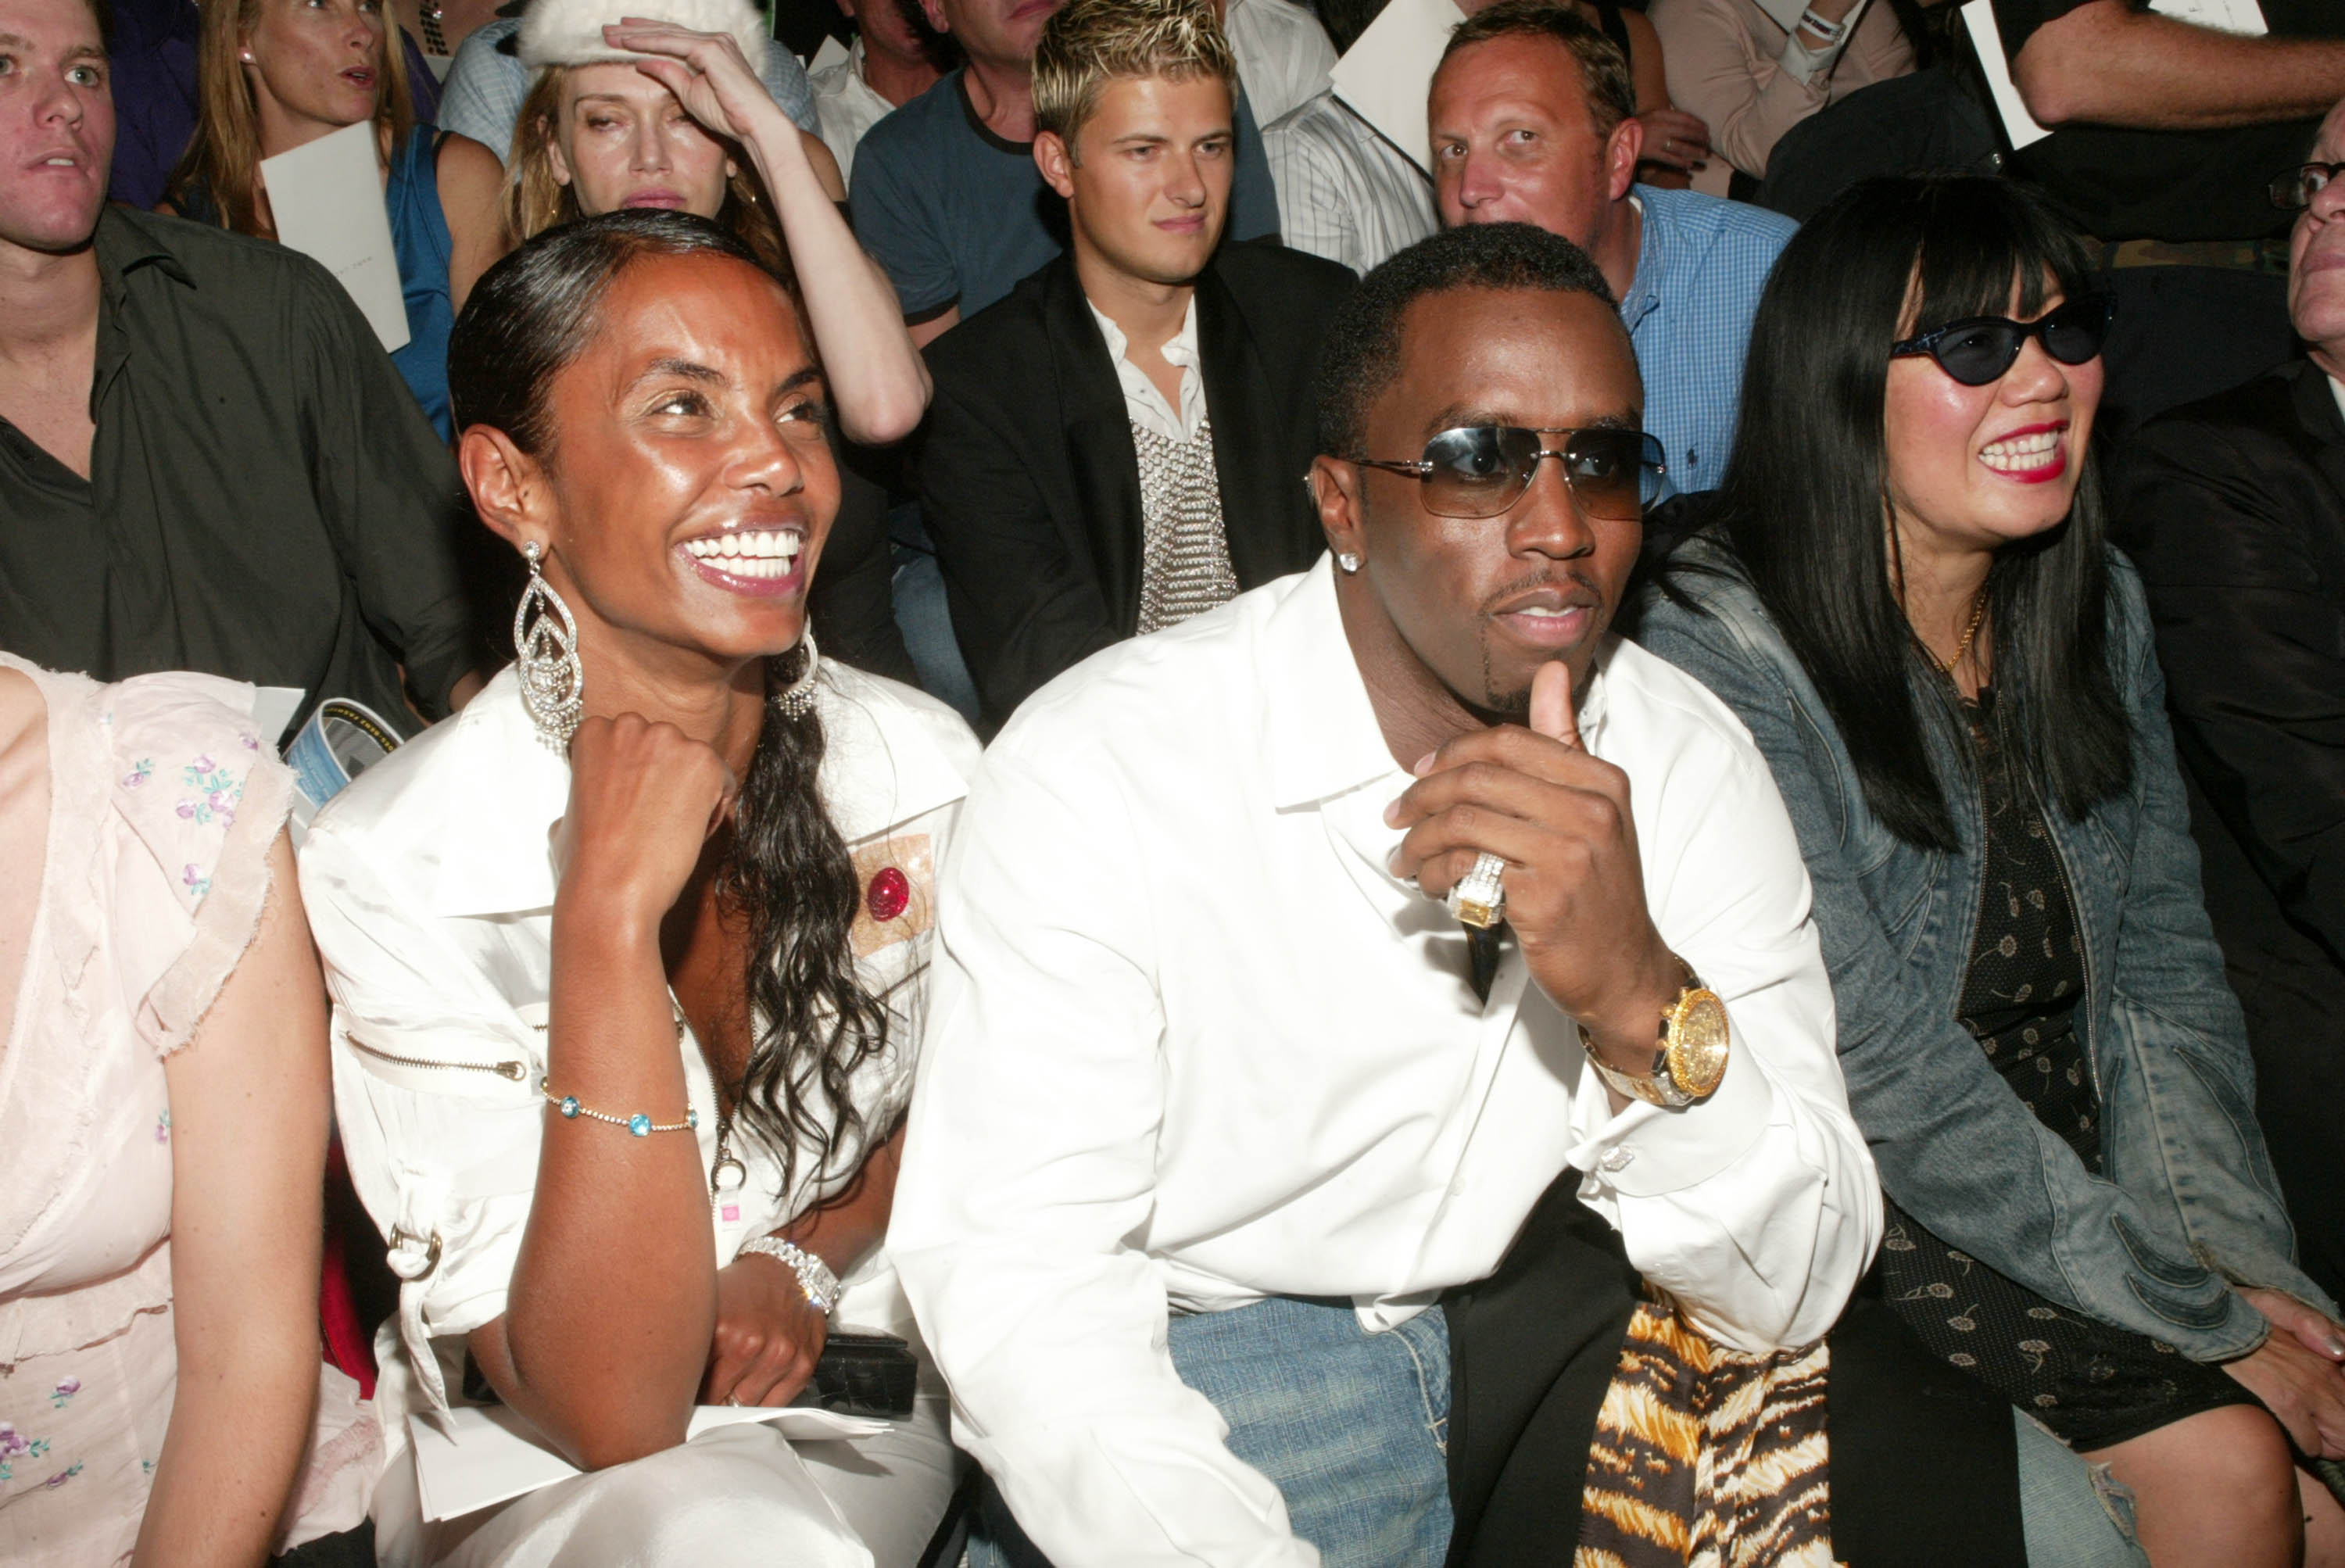 Sean 'P. Diddy' Combs and girlfriend Kim Porter attend the Marc Jacobs Spring/Summer 2004 Collection at the Manhattan Armory during the 7th on Sixth Mercedes-Benz Fashion Week on September 15, 2003, in New York City. (Getty Images)